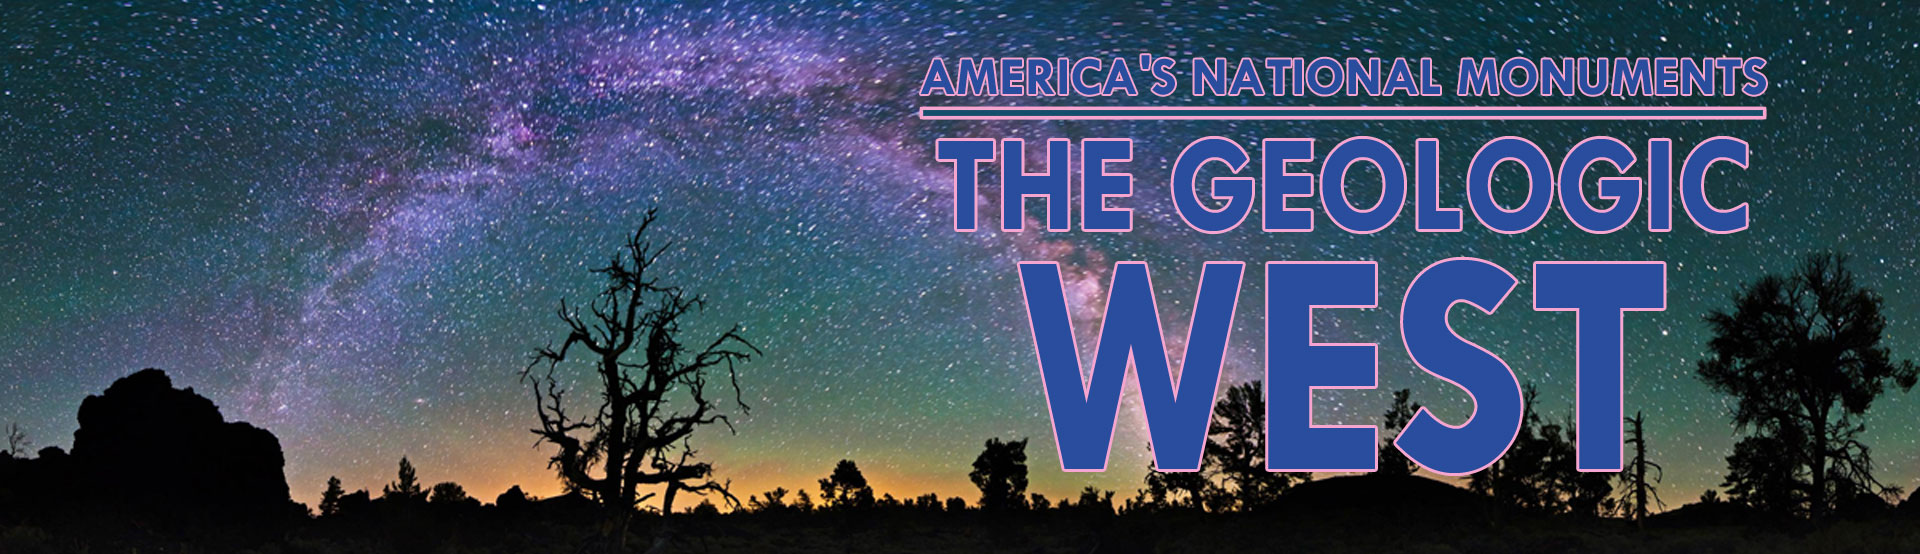 America's National Monuments: The Geologic West